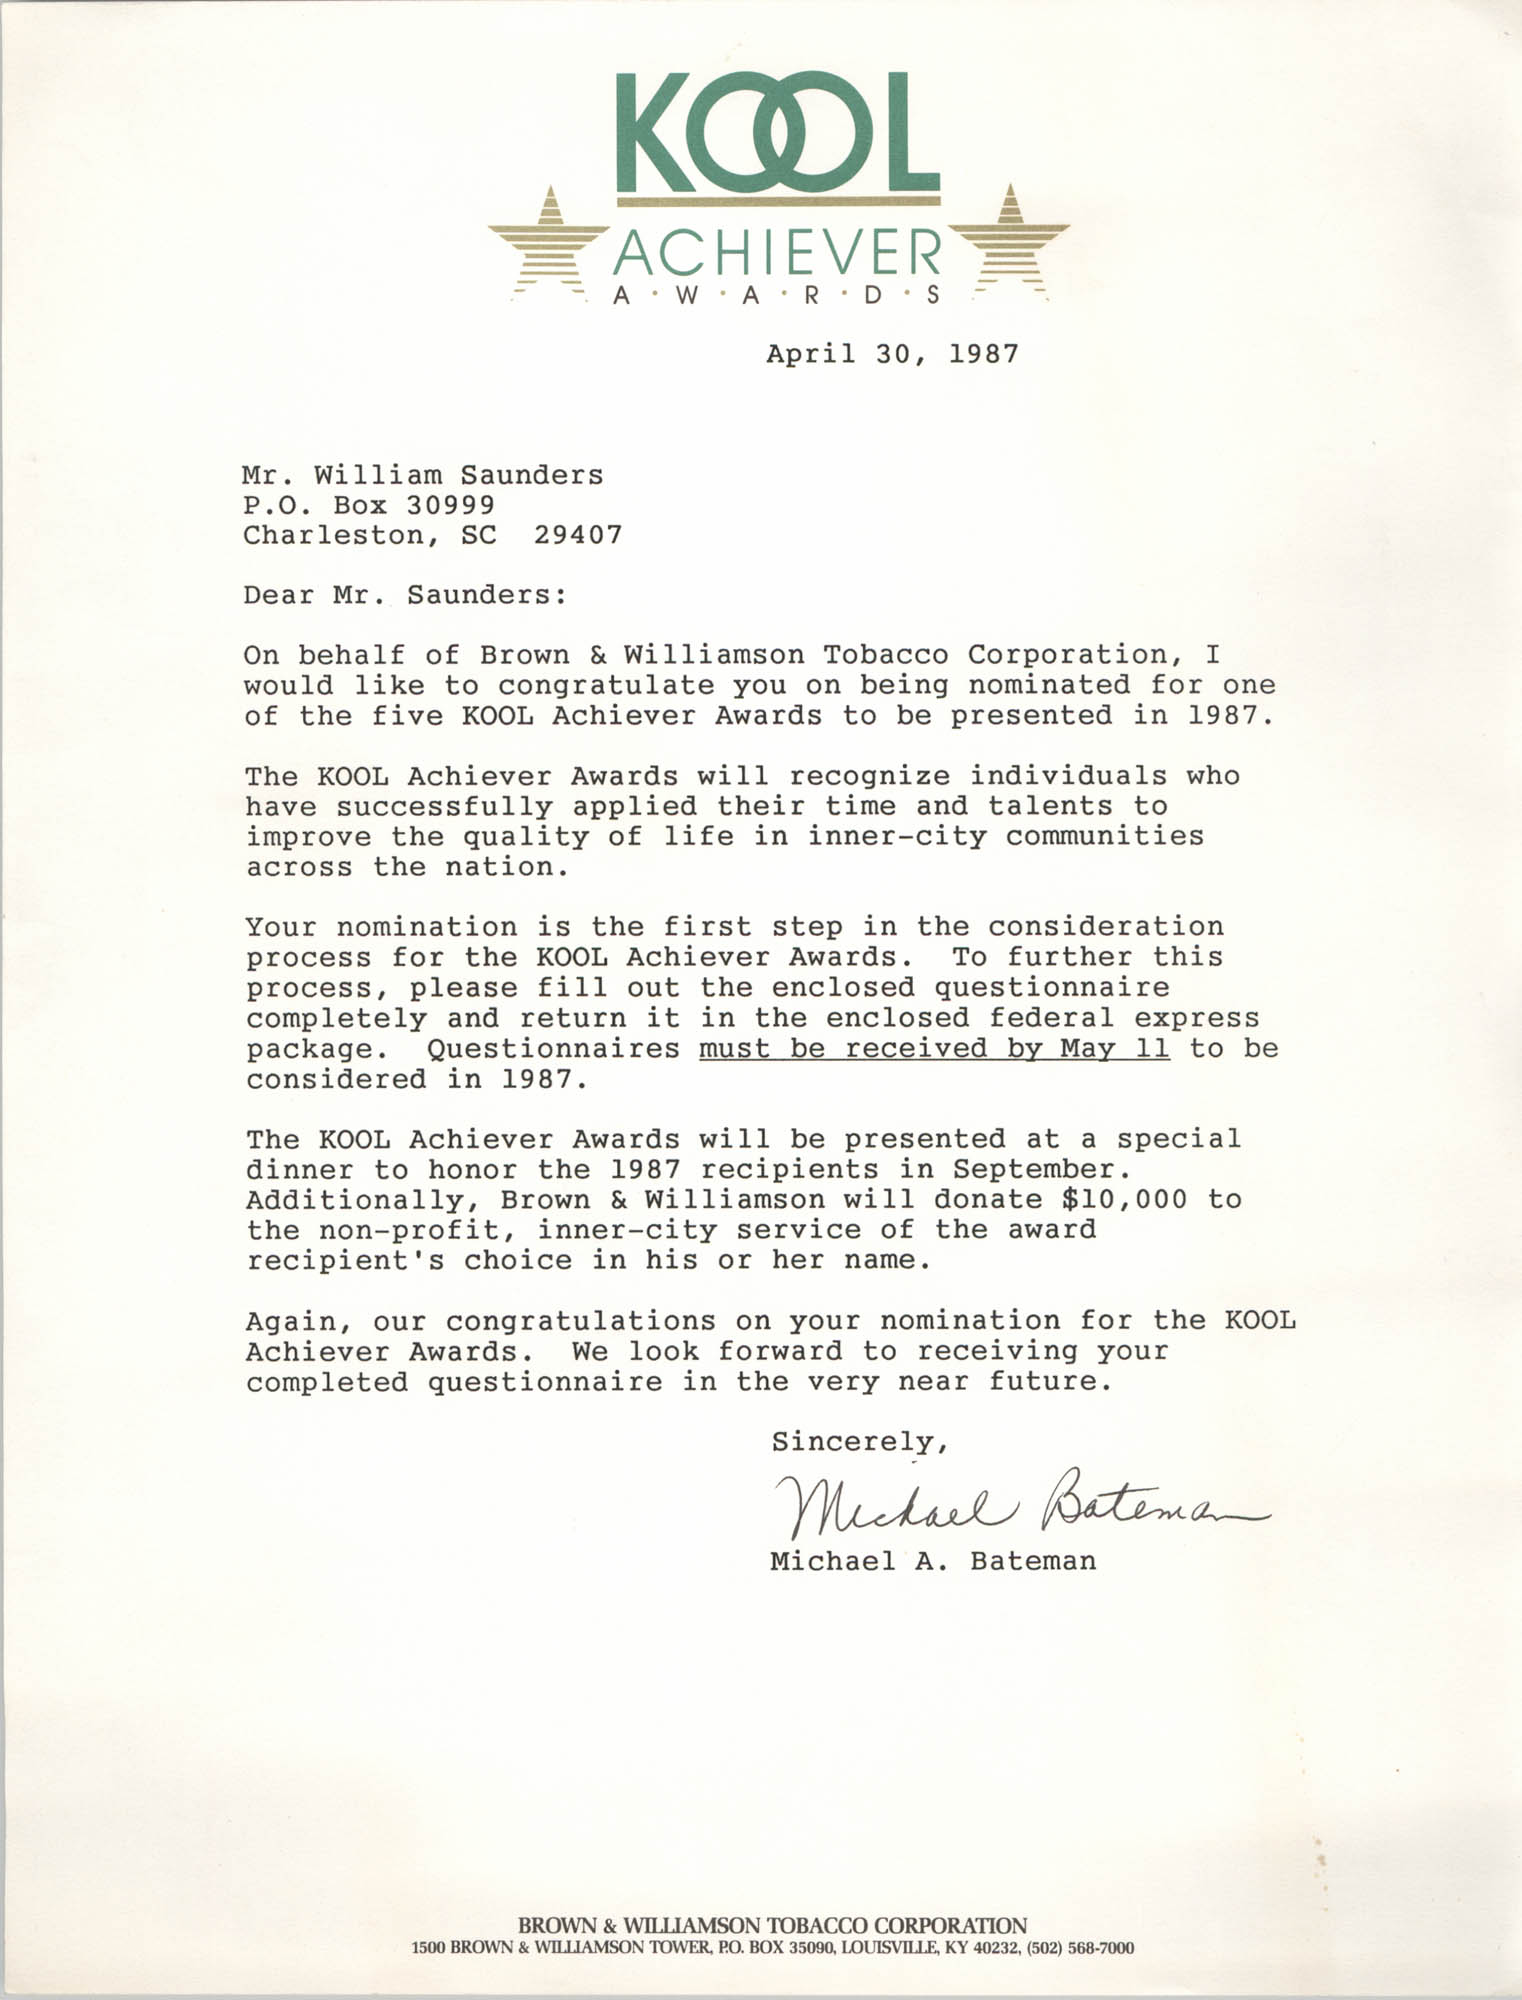 Letter from Michael A. Bateman to William Saunders, April 30, 1987